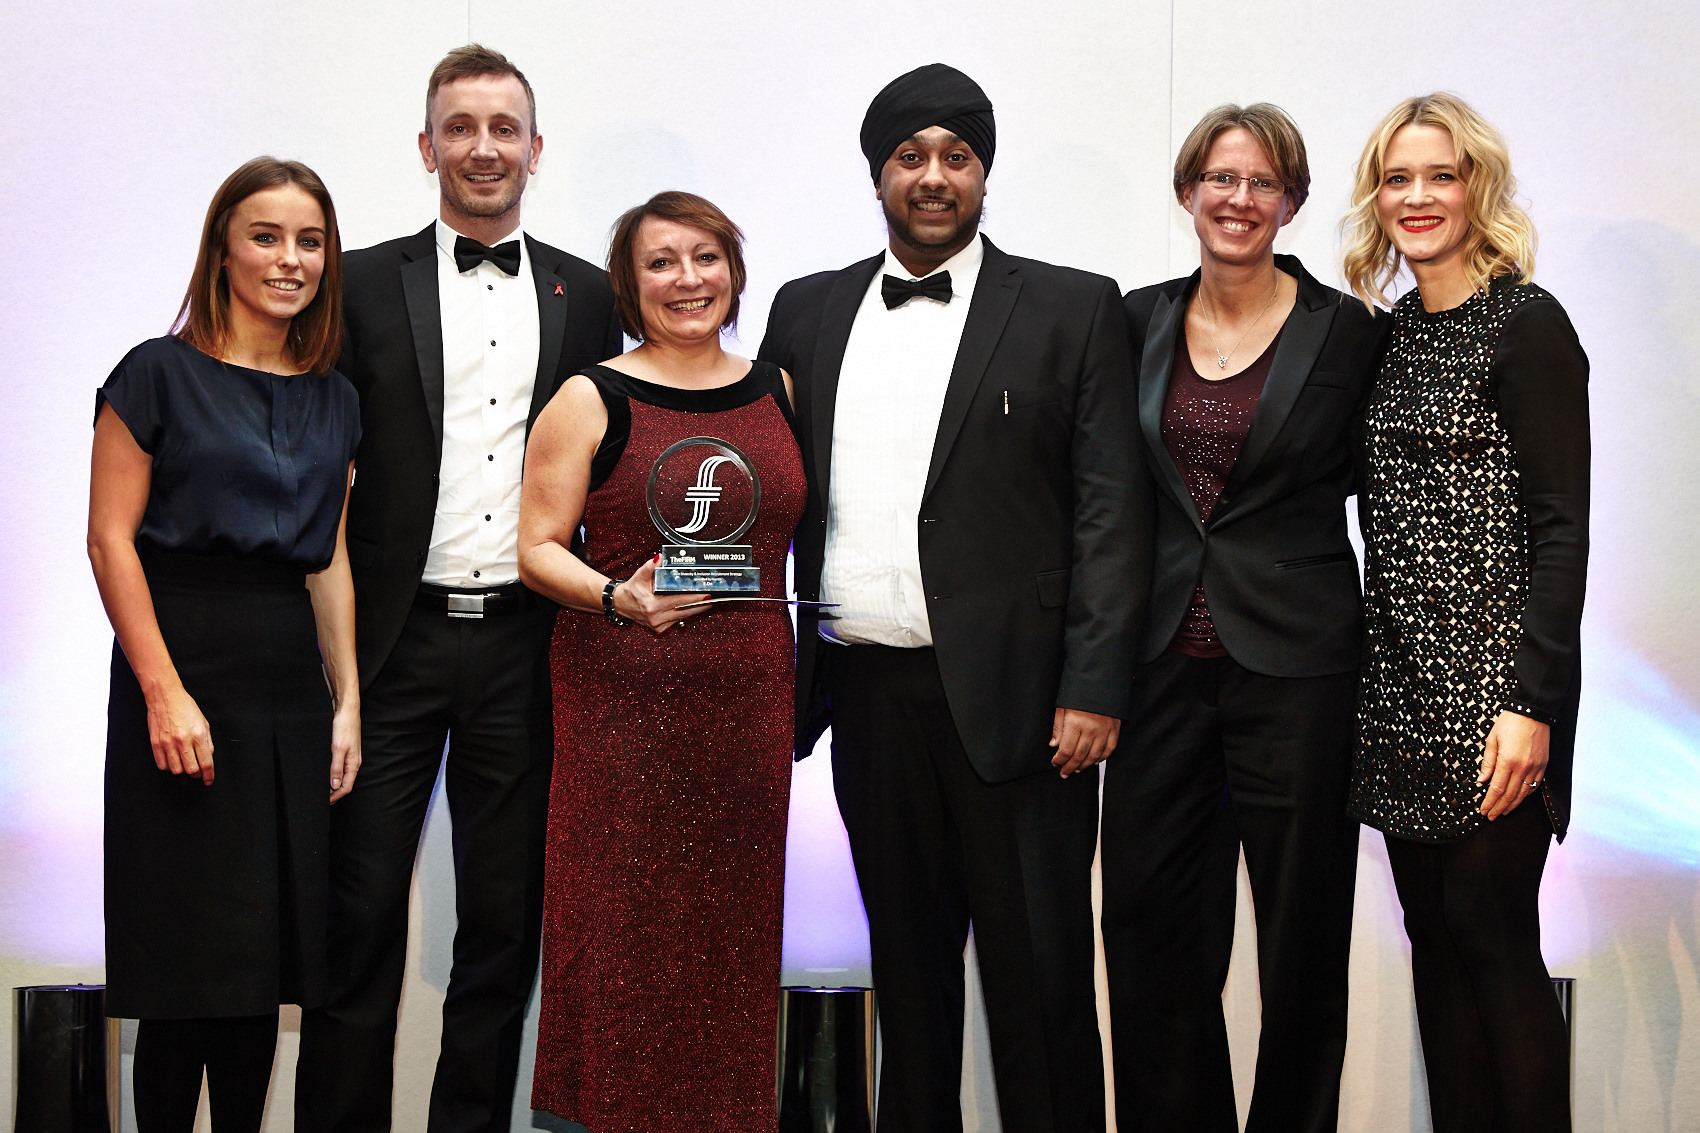 E.ON wins 'Best Diversity and Inclusion Recruitment Strategy Award'